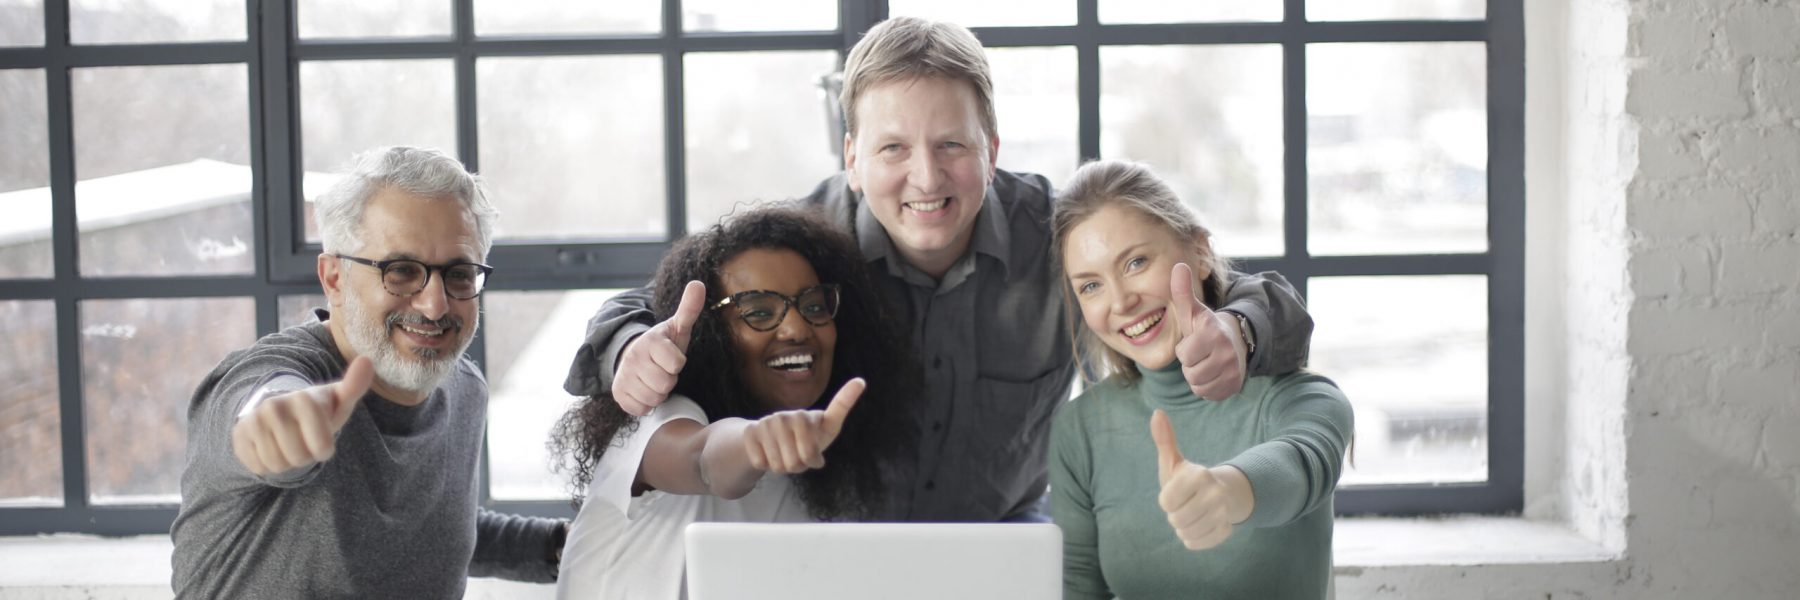 smiling-colleagues-with-laptop-and-thumbs-up-working-in-3931870